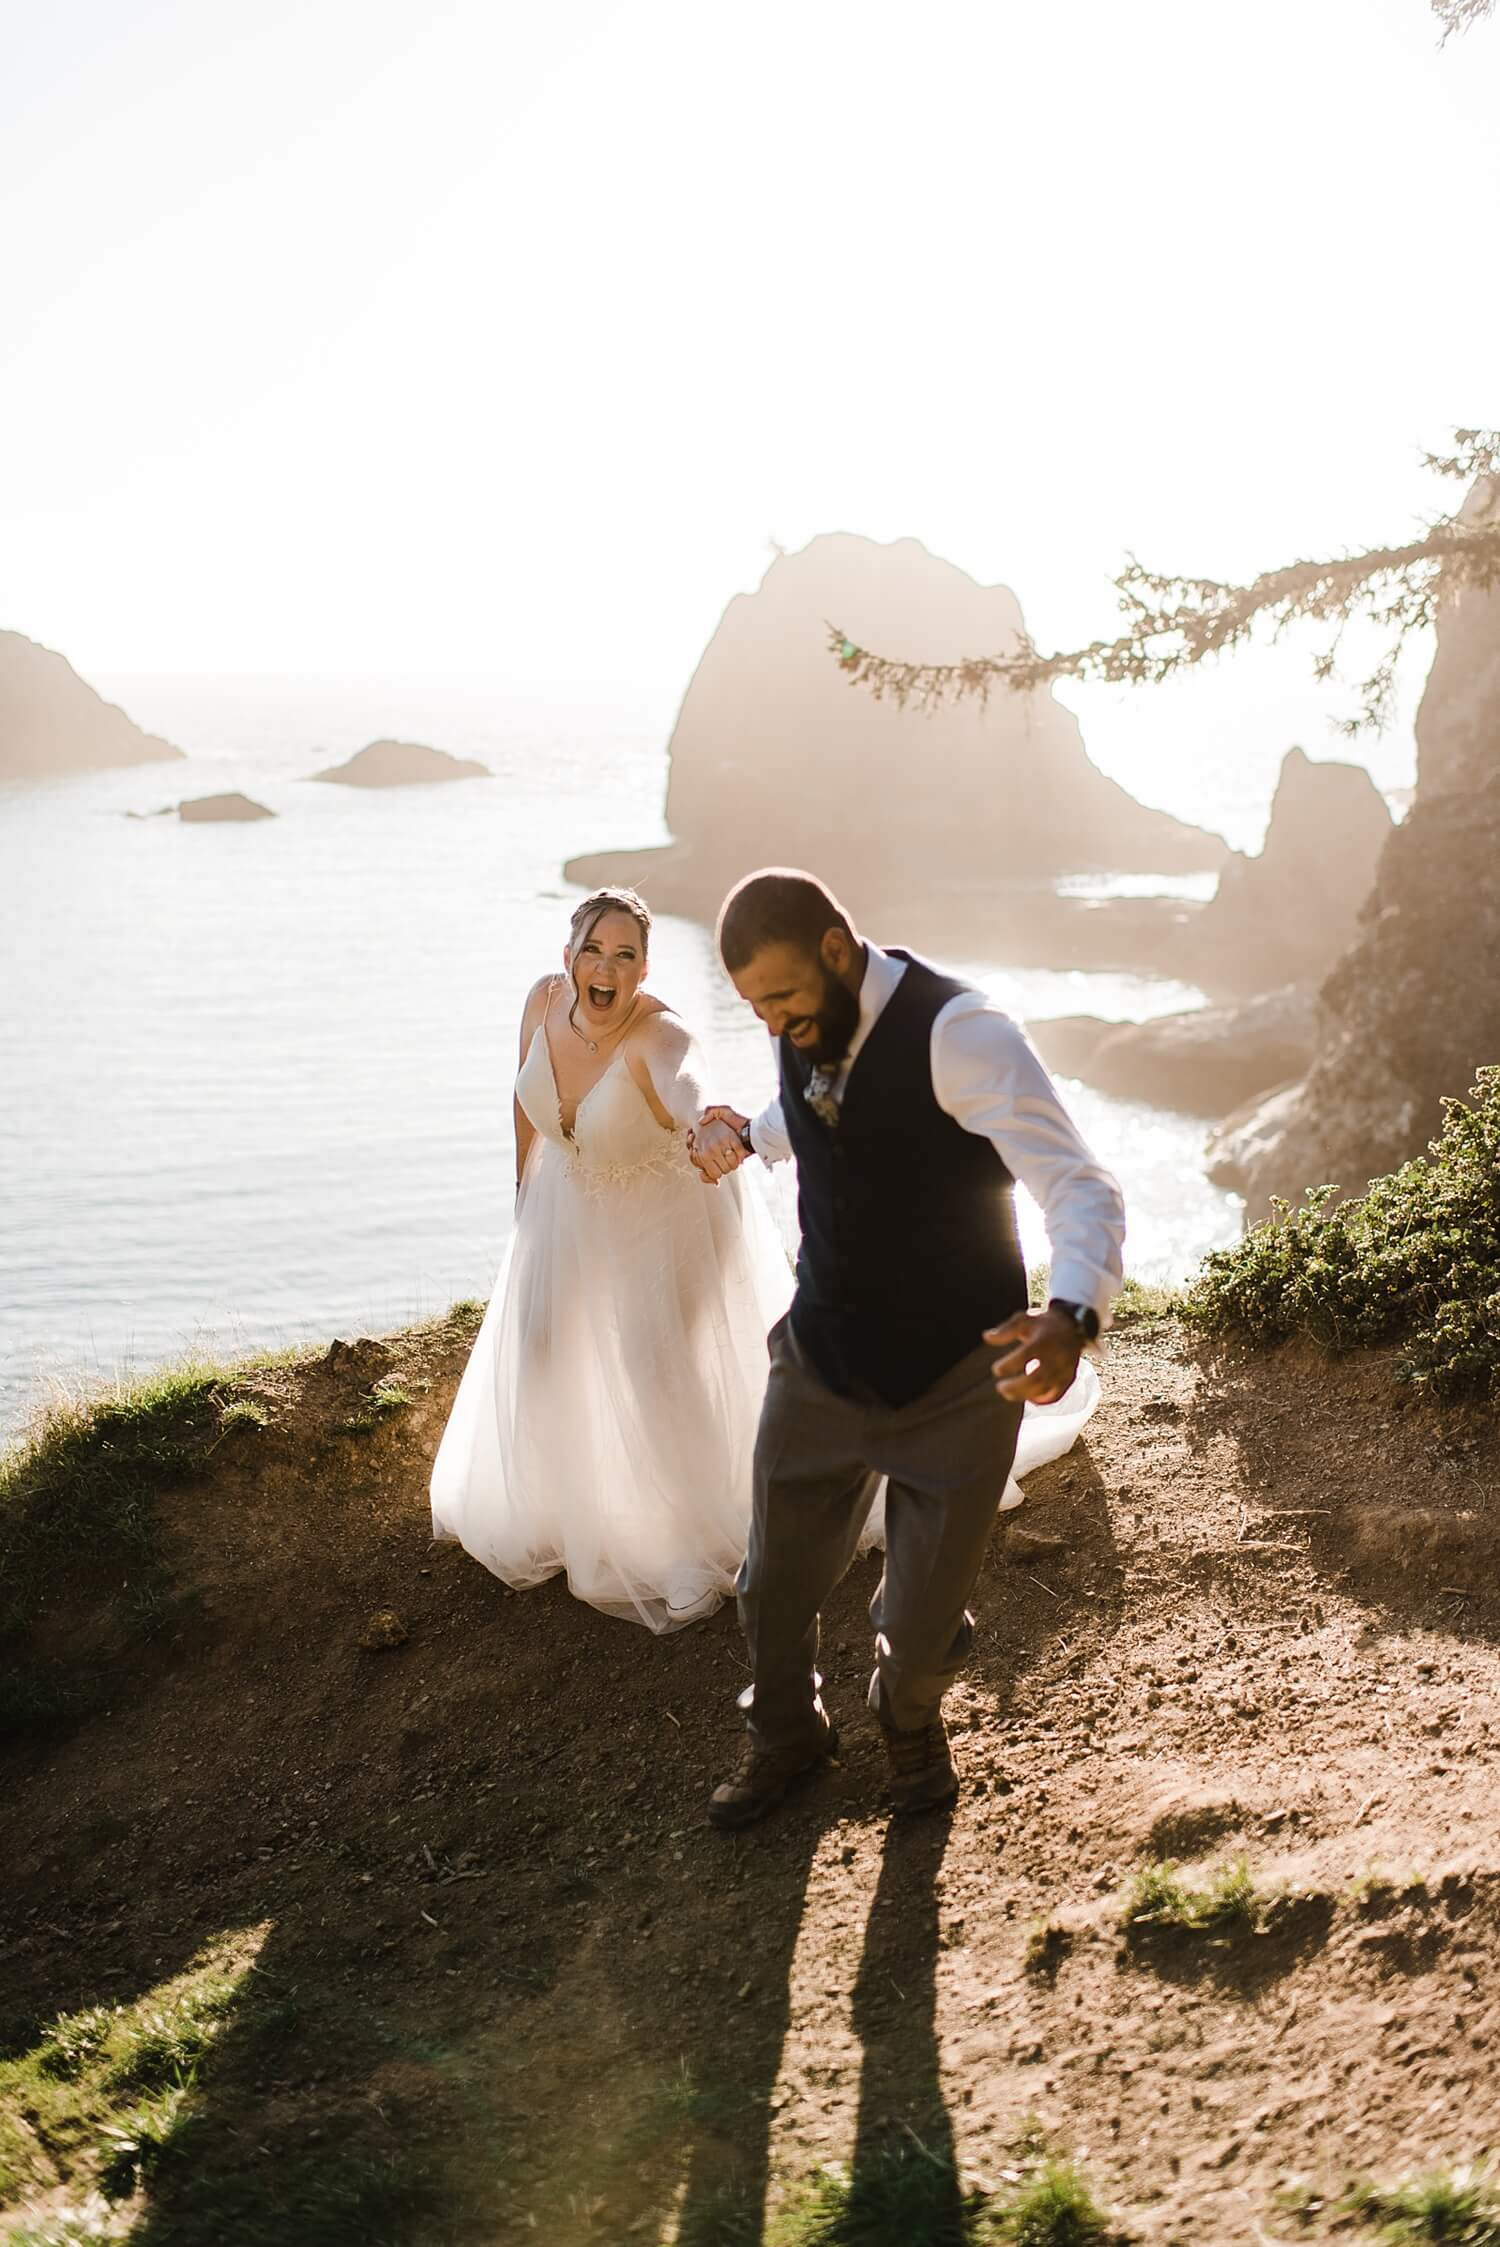 Oregon Coast,adventure elopement photographer,beach elopement,beach wedding,elopement,elopement photographer,intimate wedding,oregon coast elopement,oregon wedding,pacific northwest wedding,sam starns,